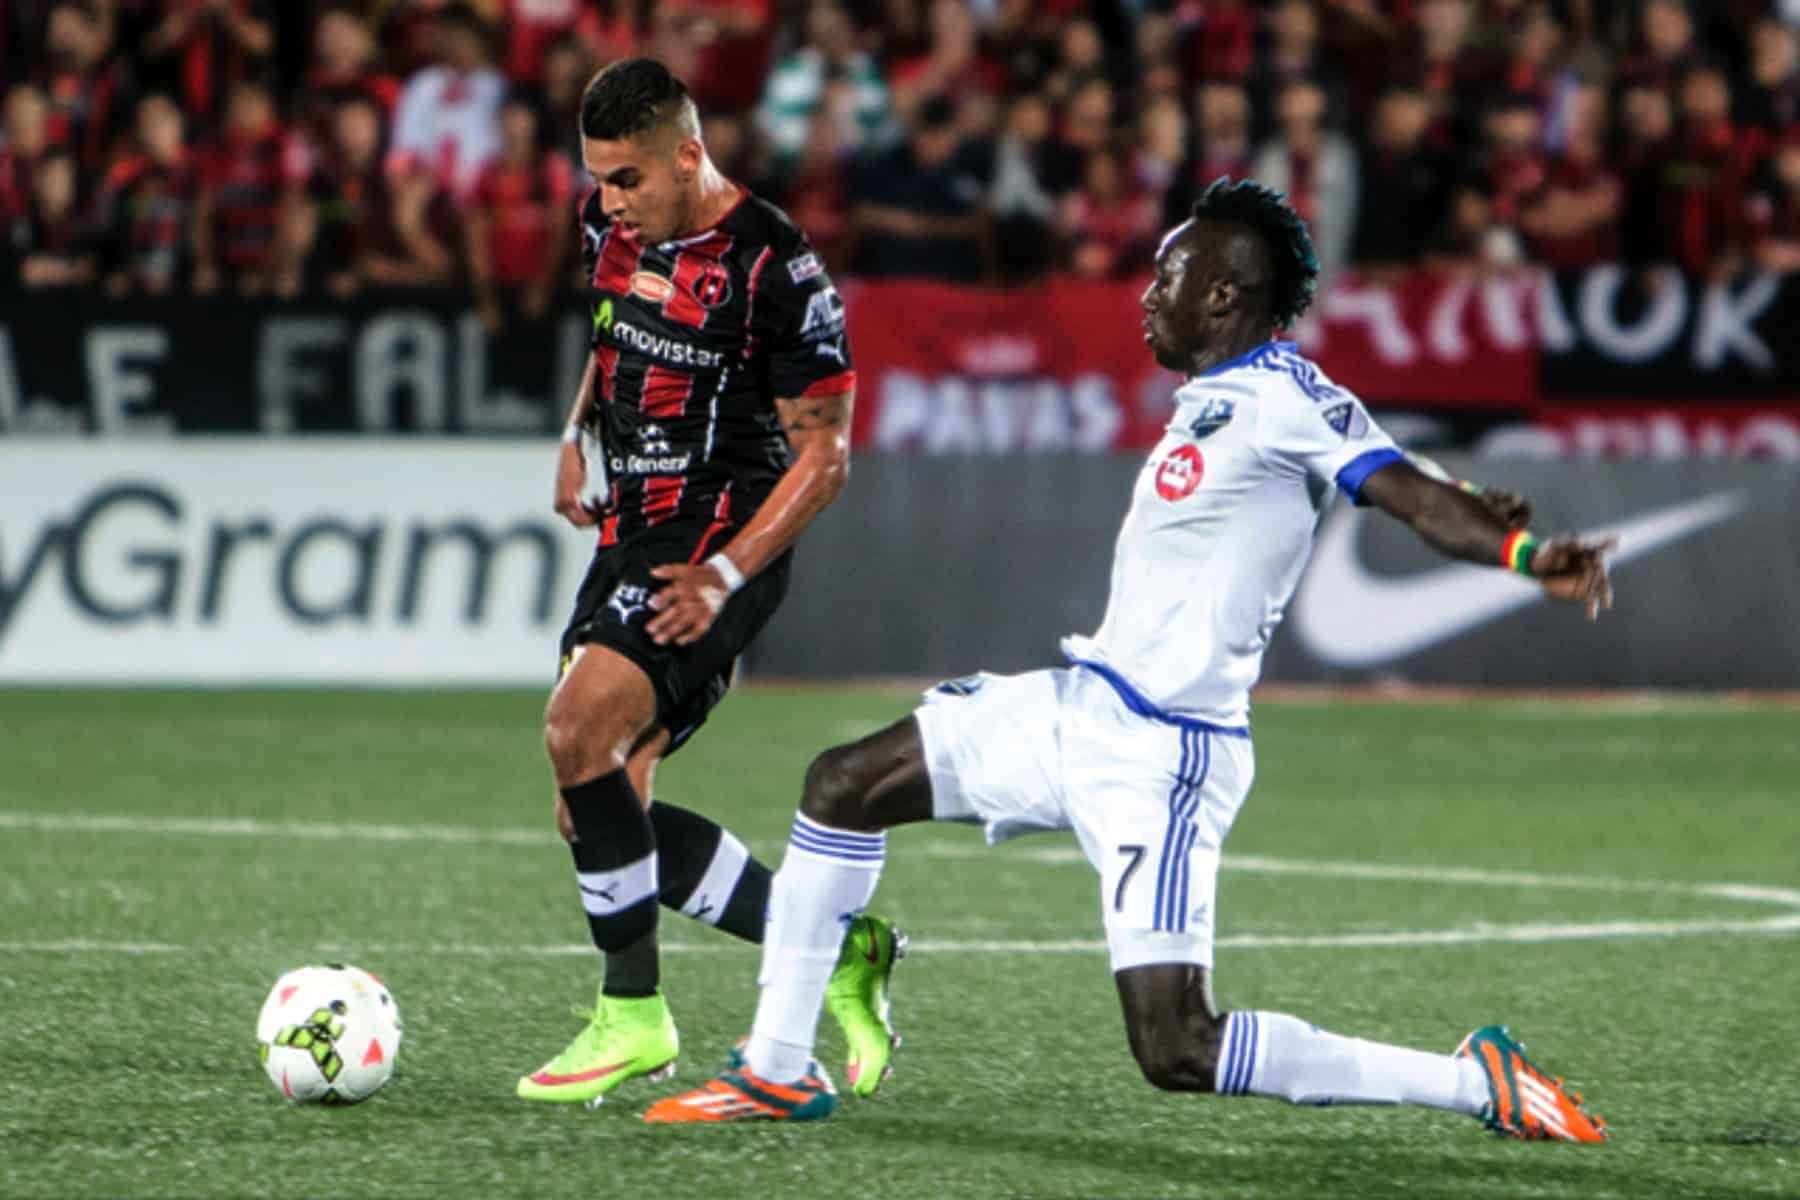 Alajuelense - Impact CONCACAF Champion's League semifinal match